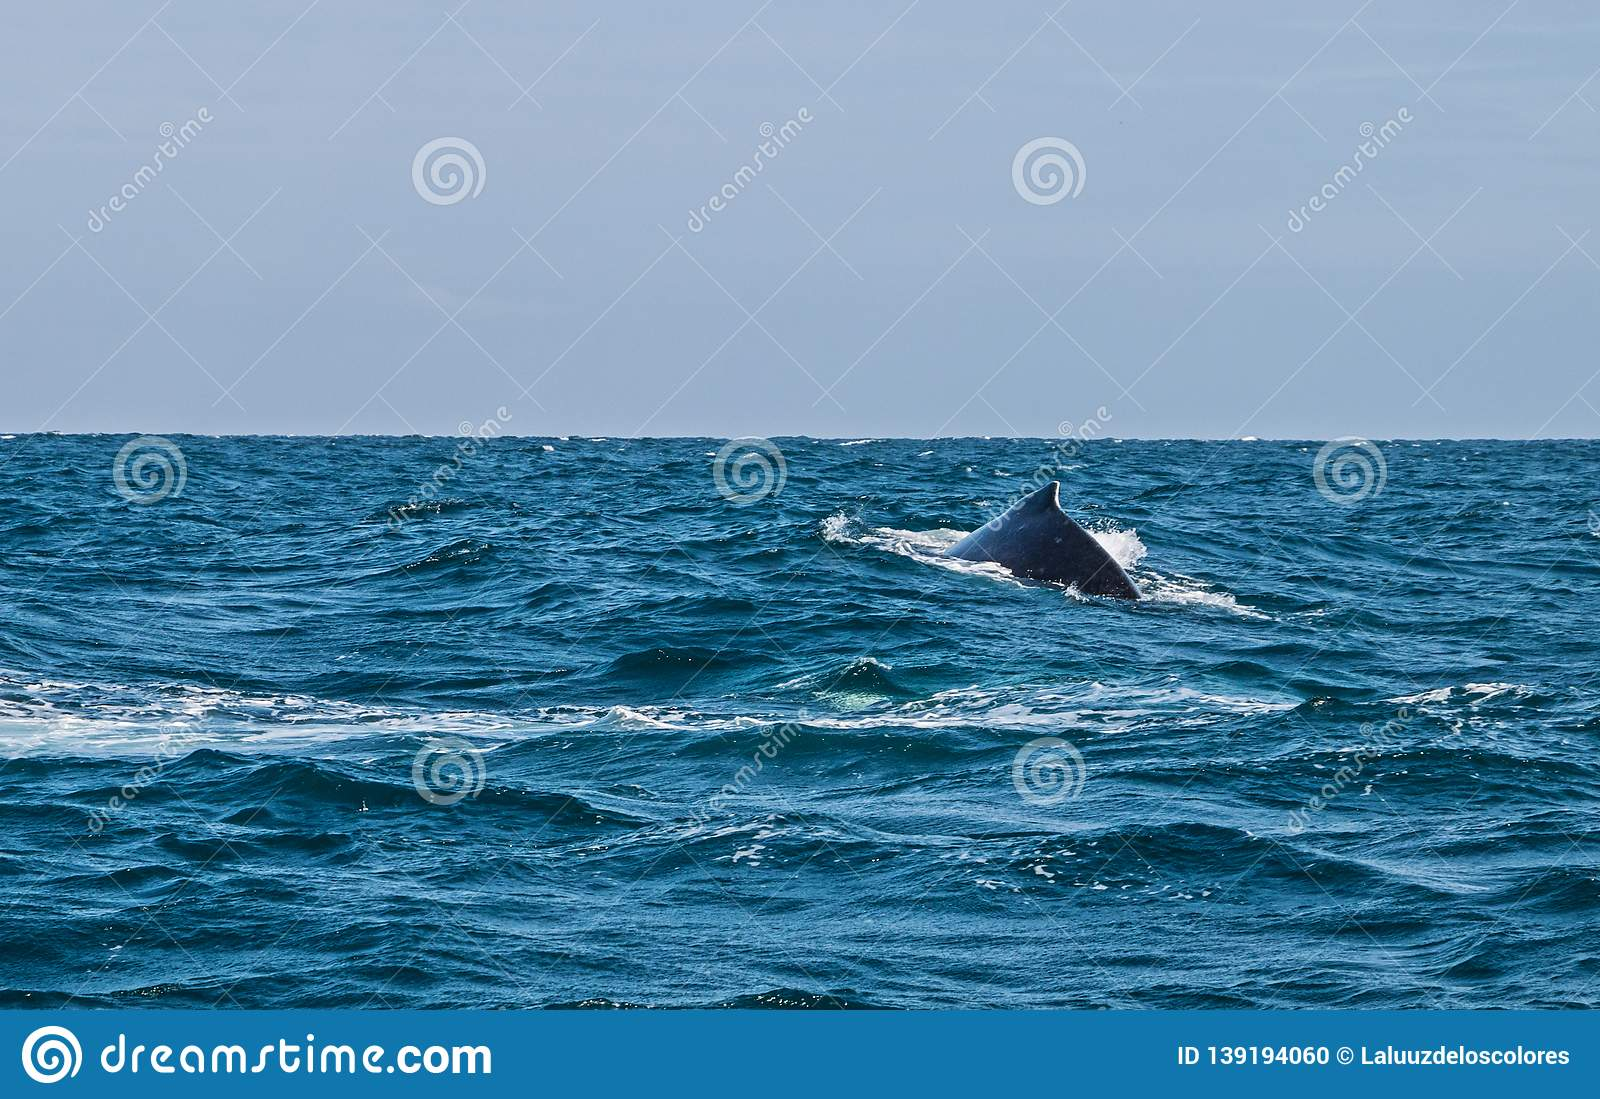 Dorsal fin of a baby humpback whale